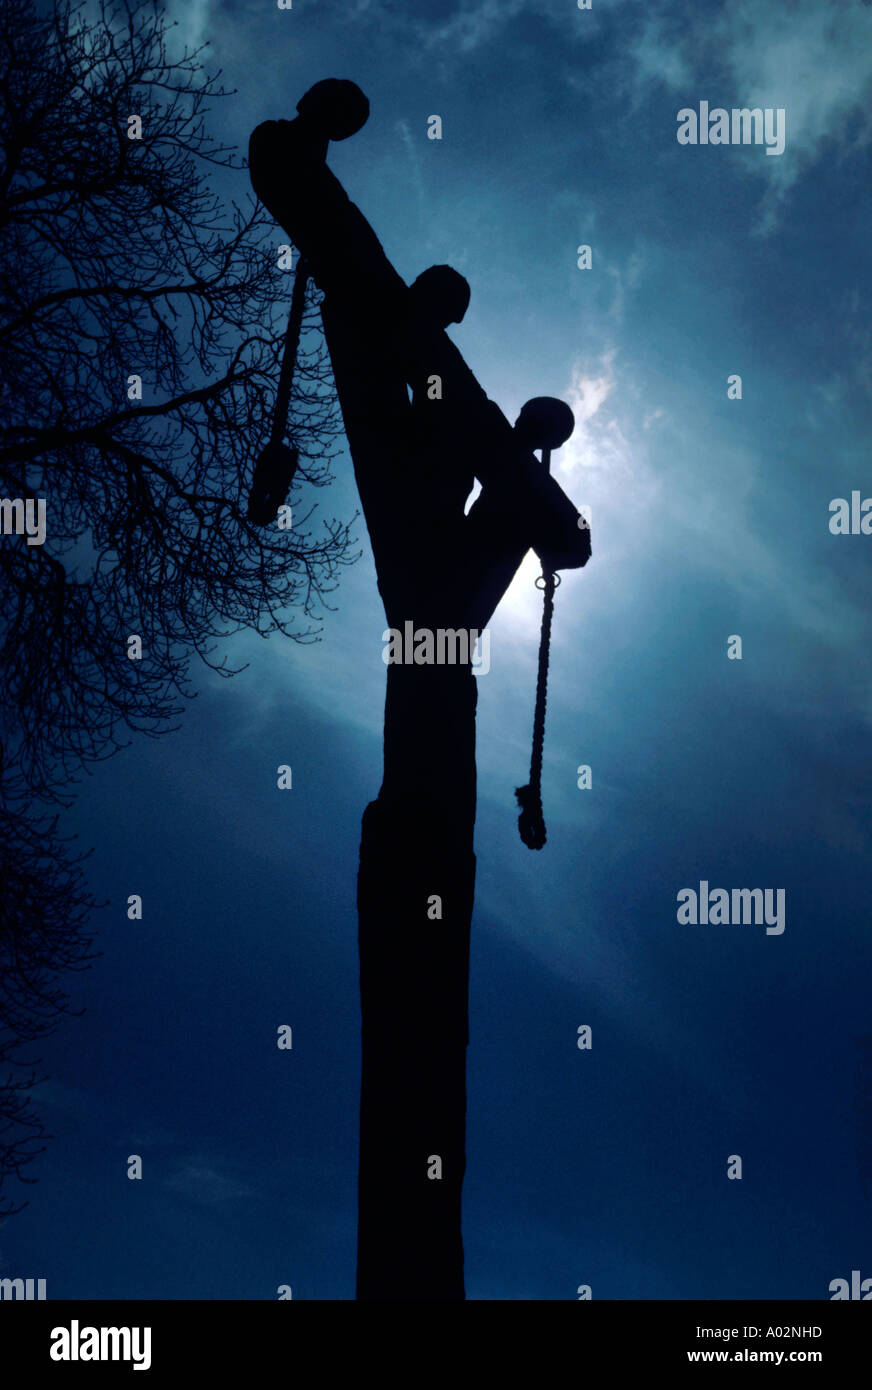 Silhouette of gallows at night, Montcornet, Ardennes, France. - Stock Image